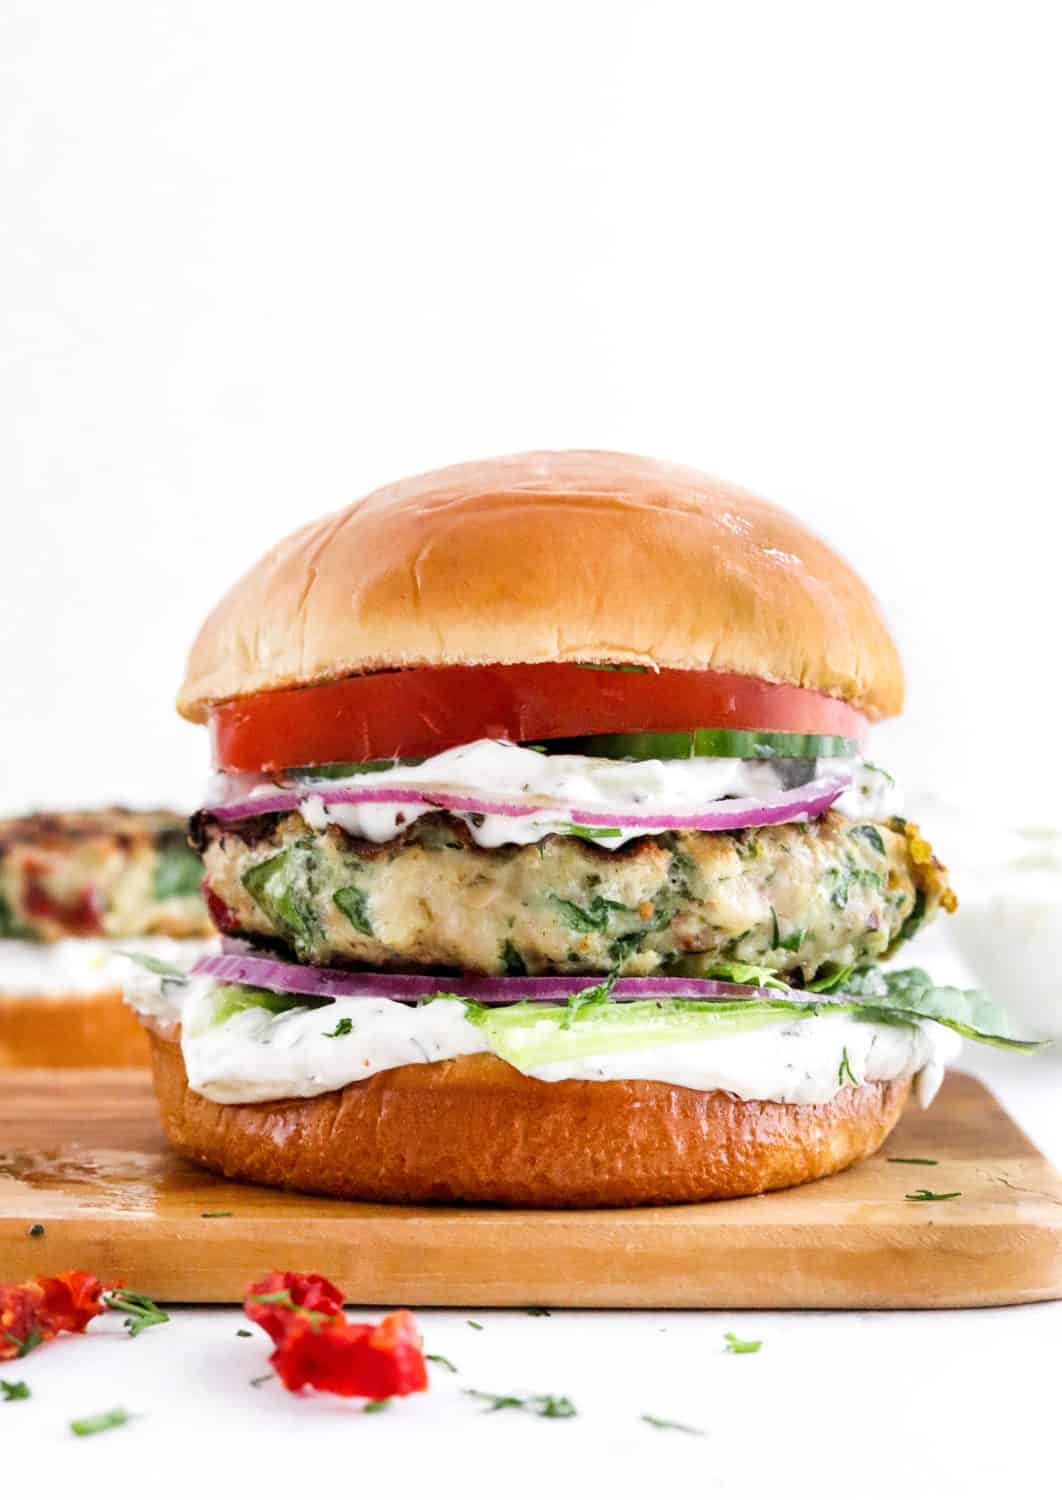 Chicken burger between a bun with white sauce on it and sliced tomato and red onion on a brown cutting board.